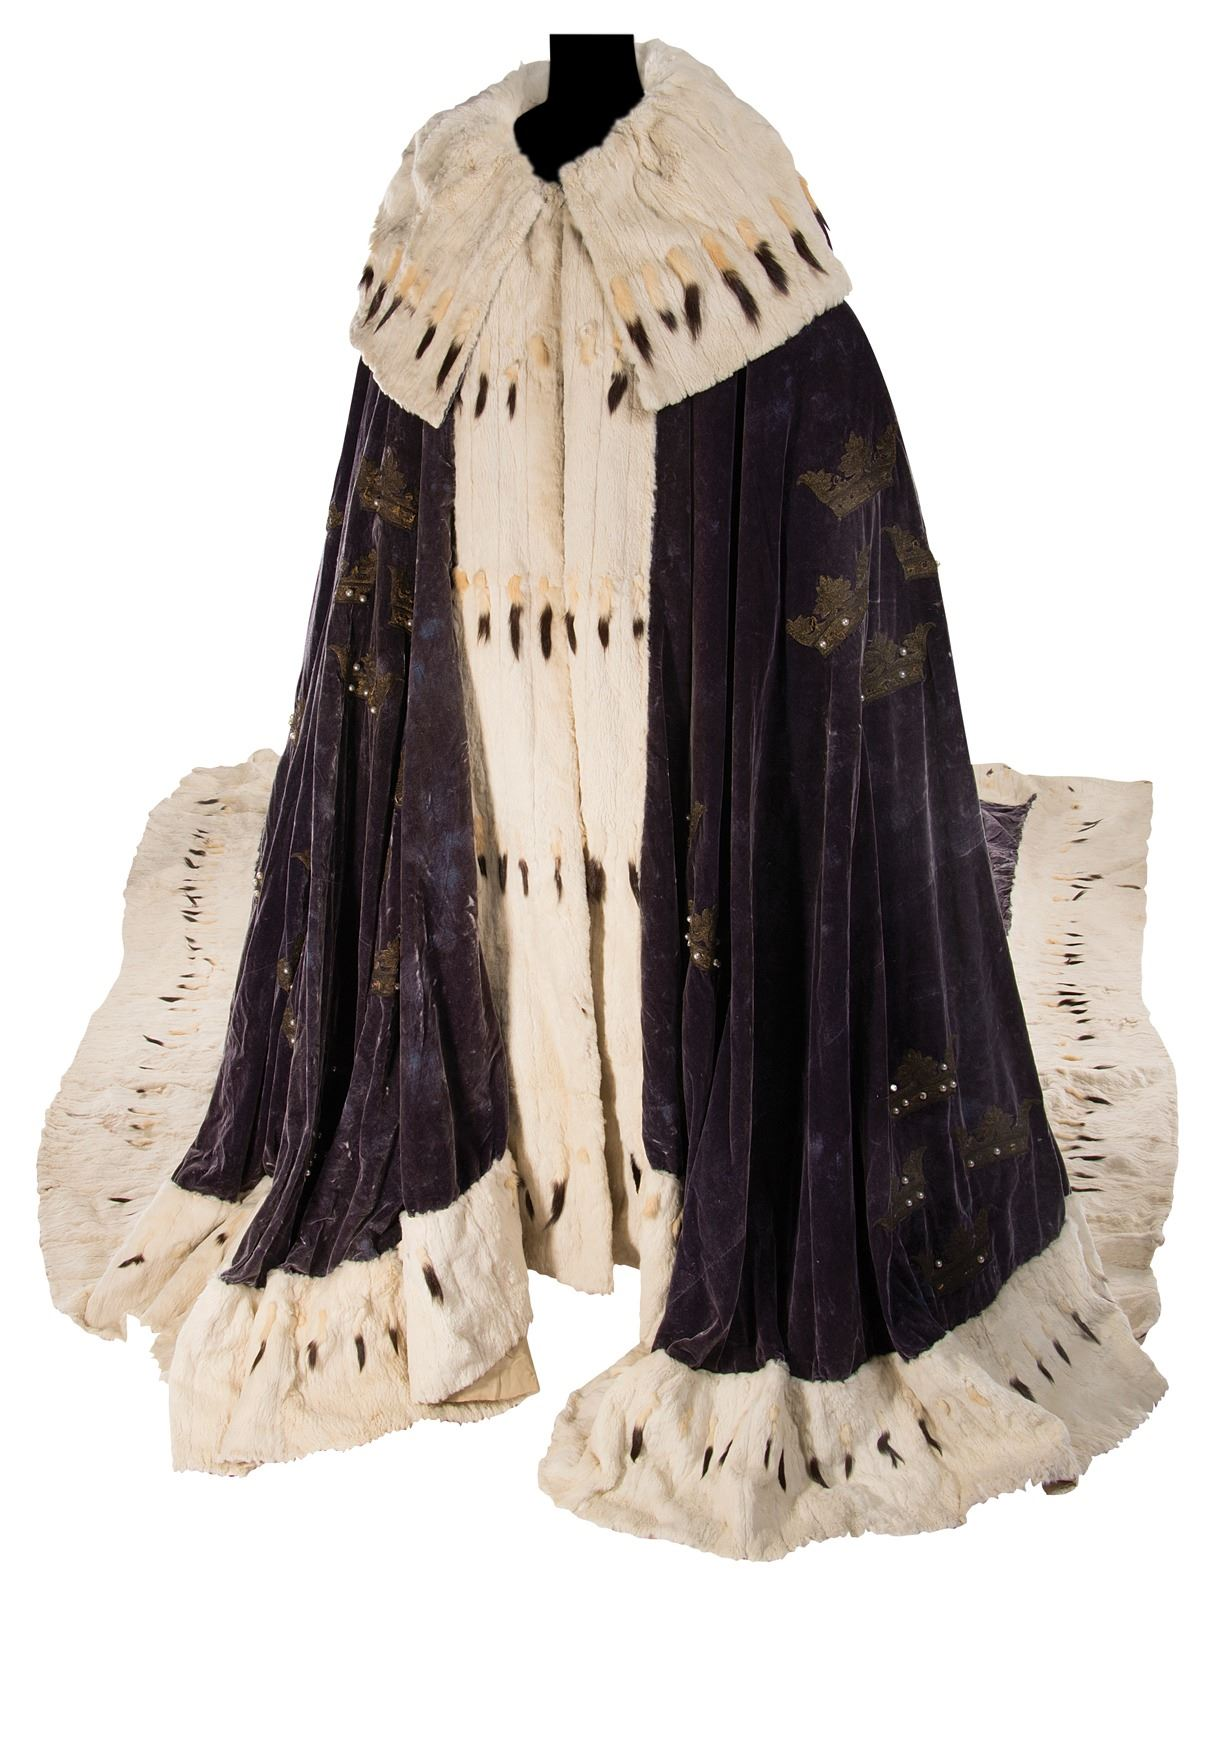 Ermine trimmed velvet coronation robe by Adrian for Queen Christina. Photo: Profiles in History